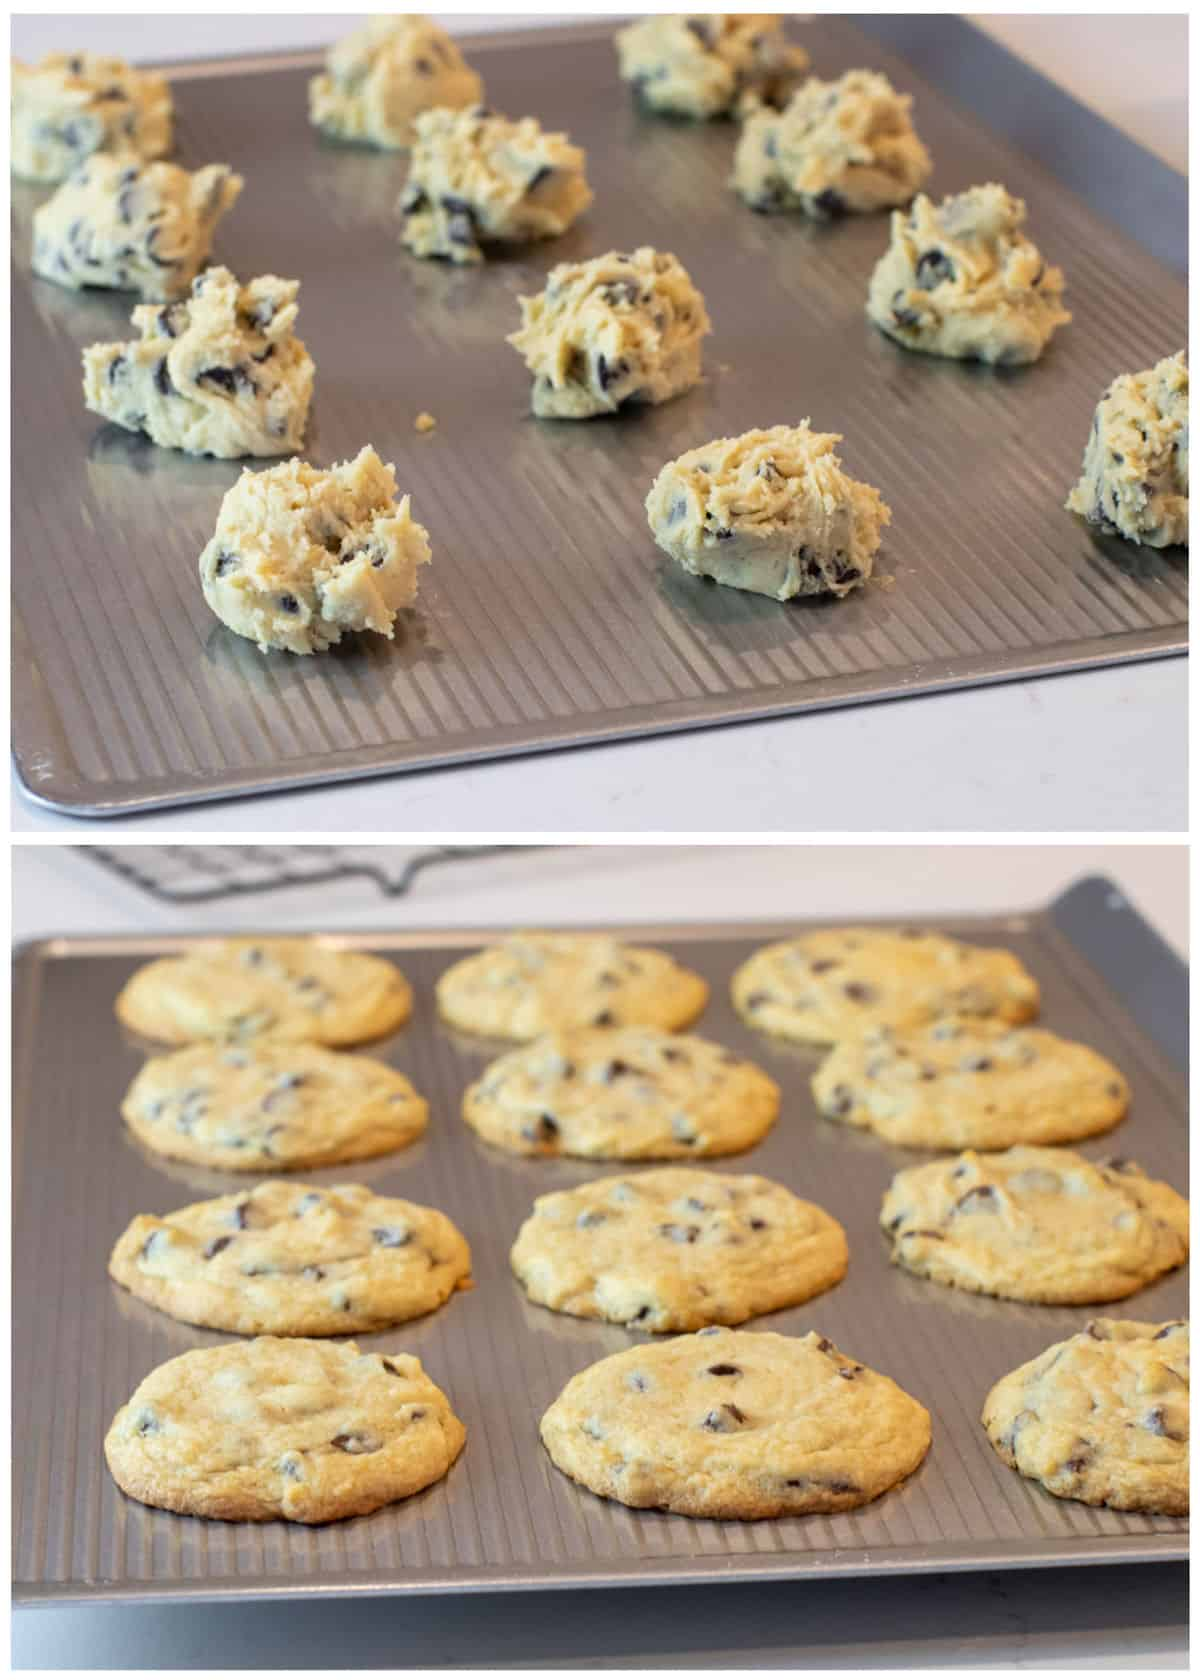 Before and after pictures of cookies on a sheet.